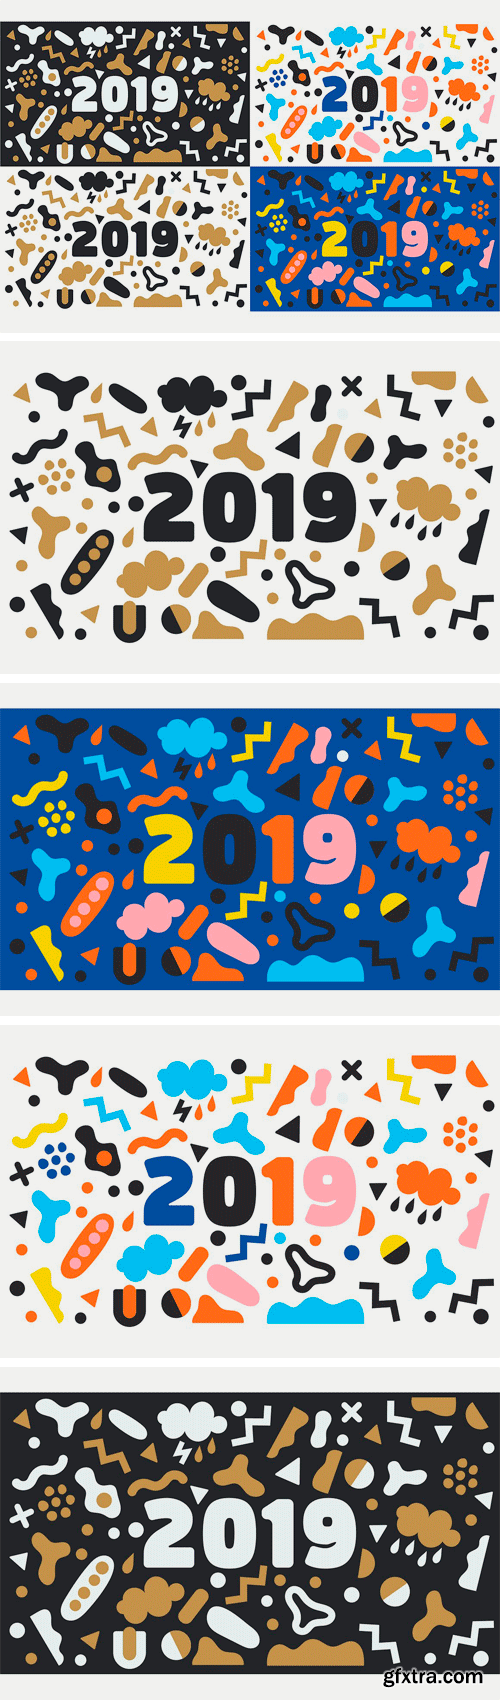 CM - 2019 New Year Vector Background Set 3020130